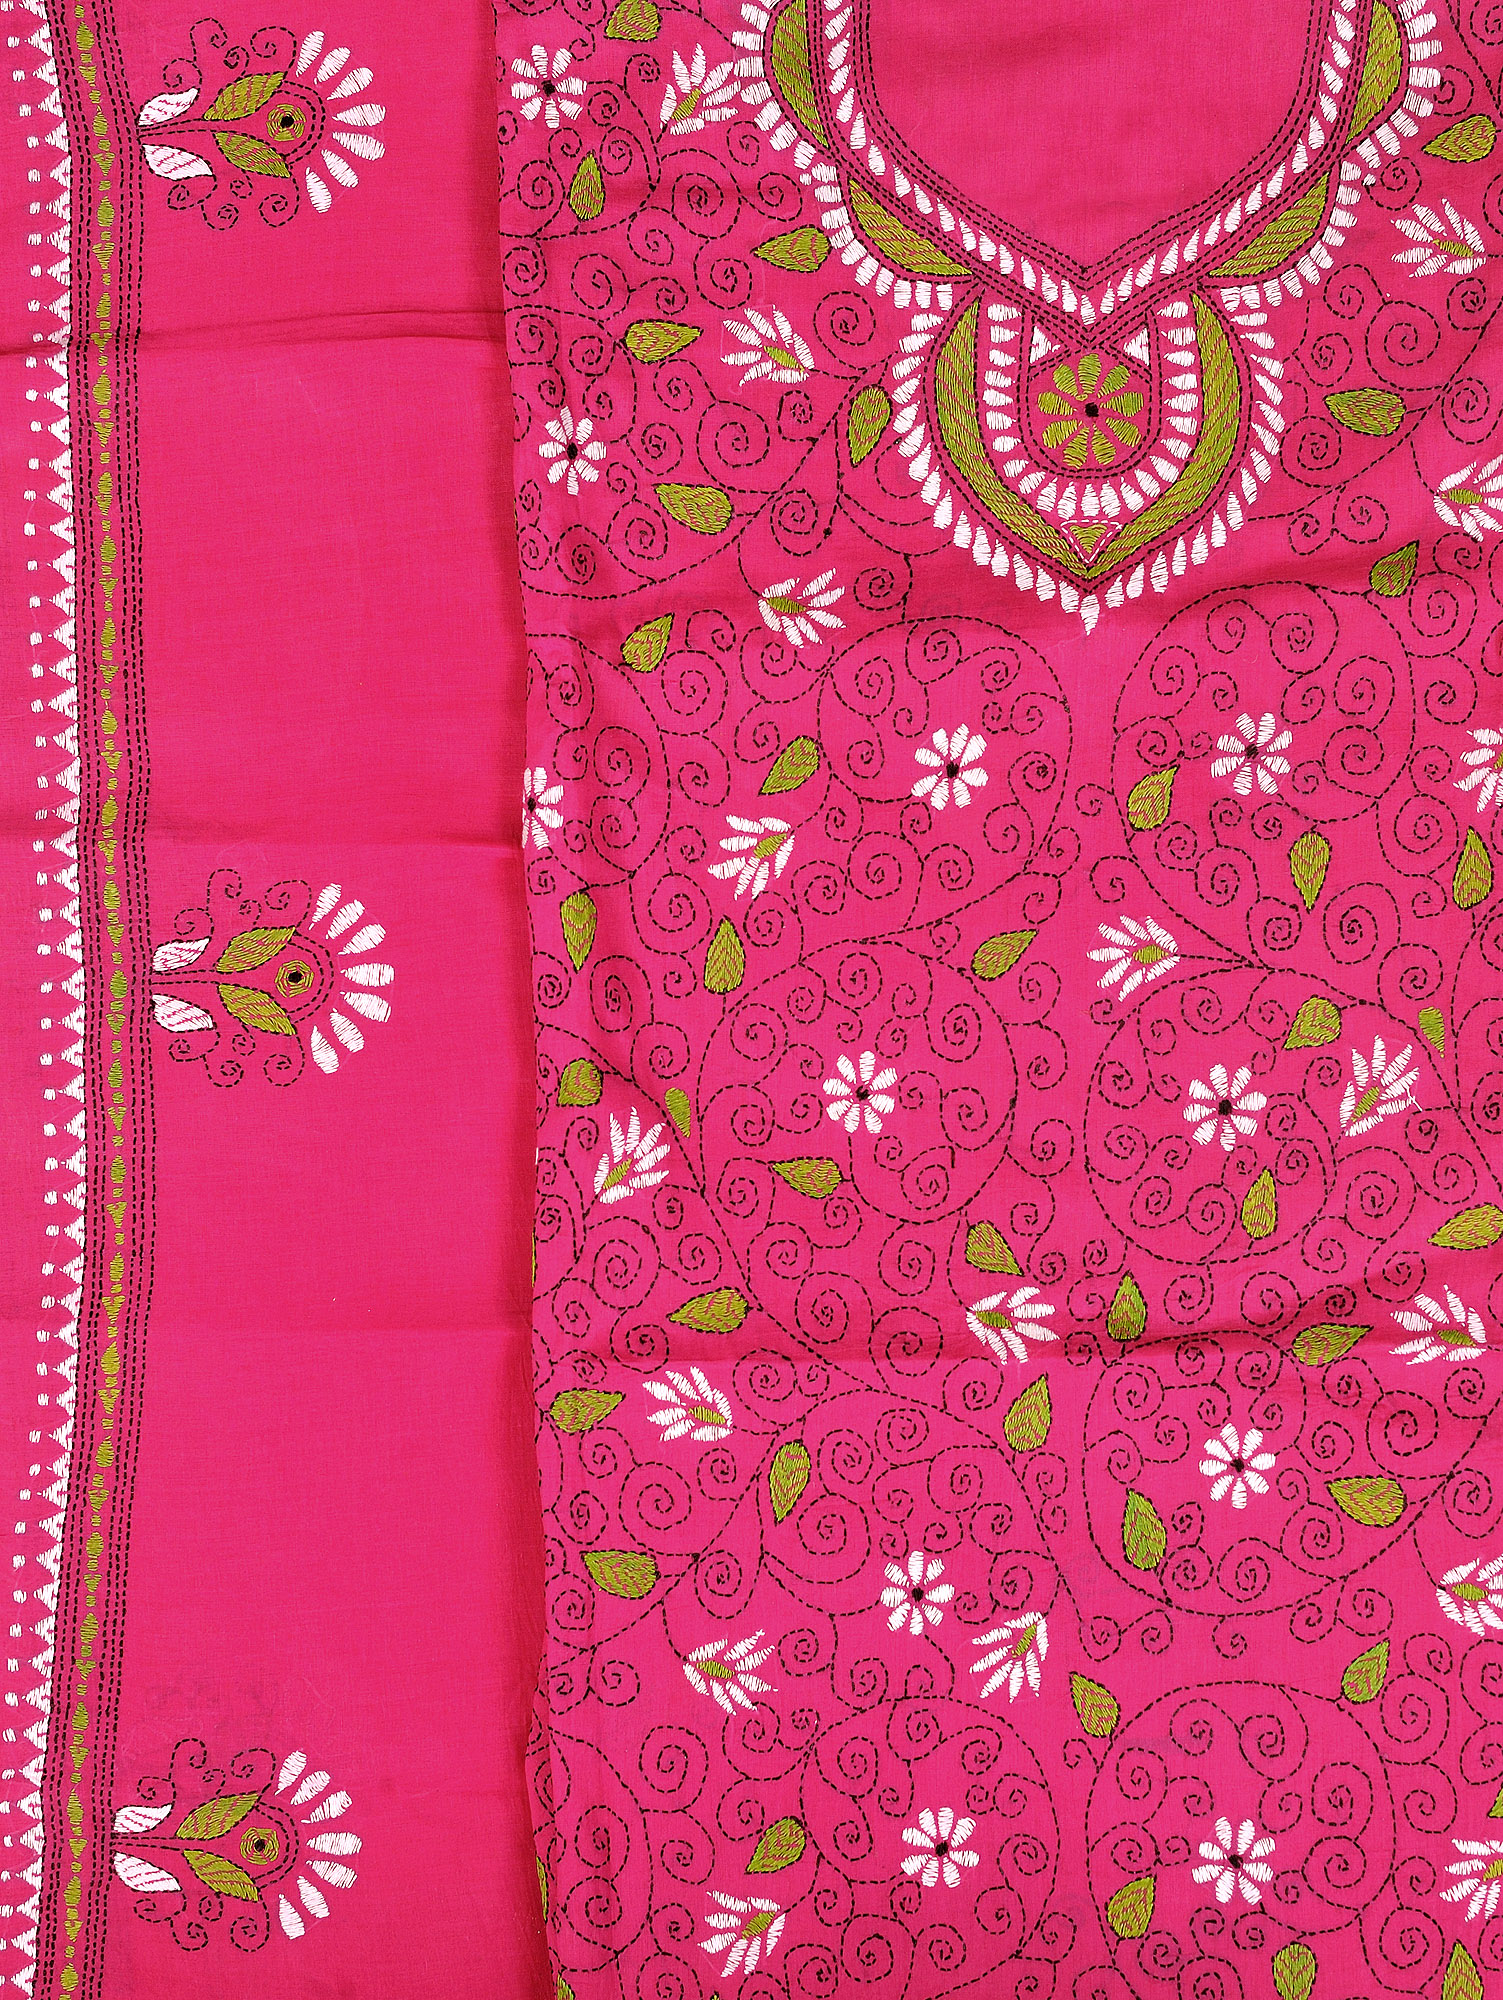 Magenta salwar kameez fabric from kolkata with kantha hand